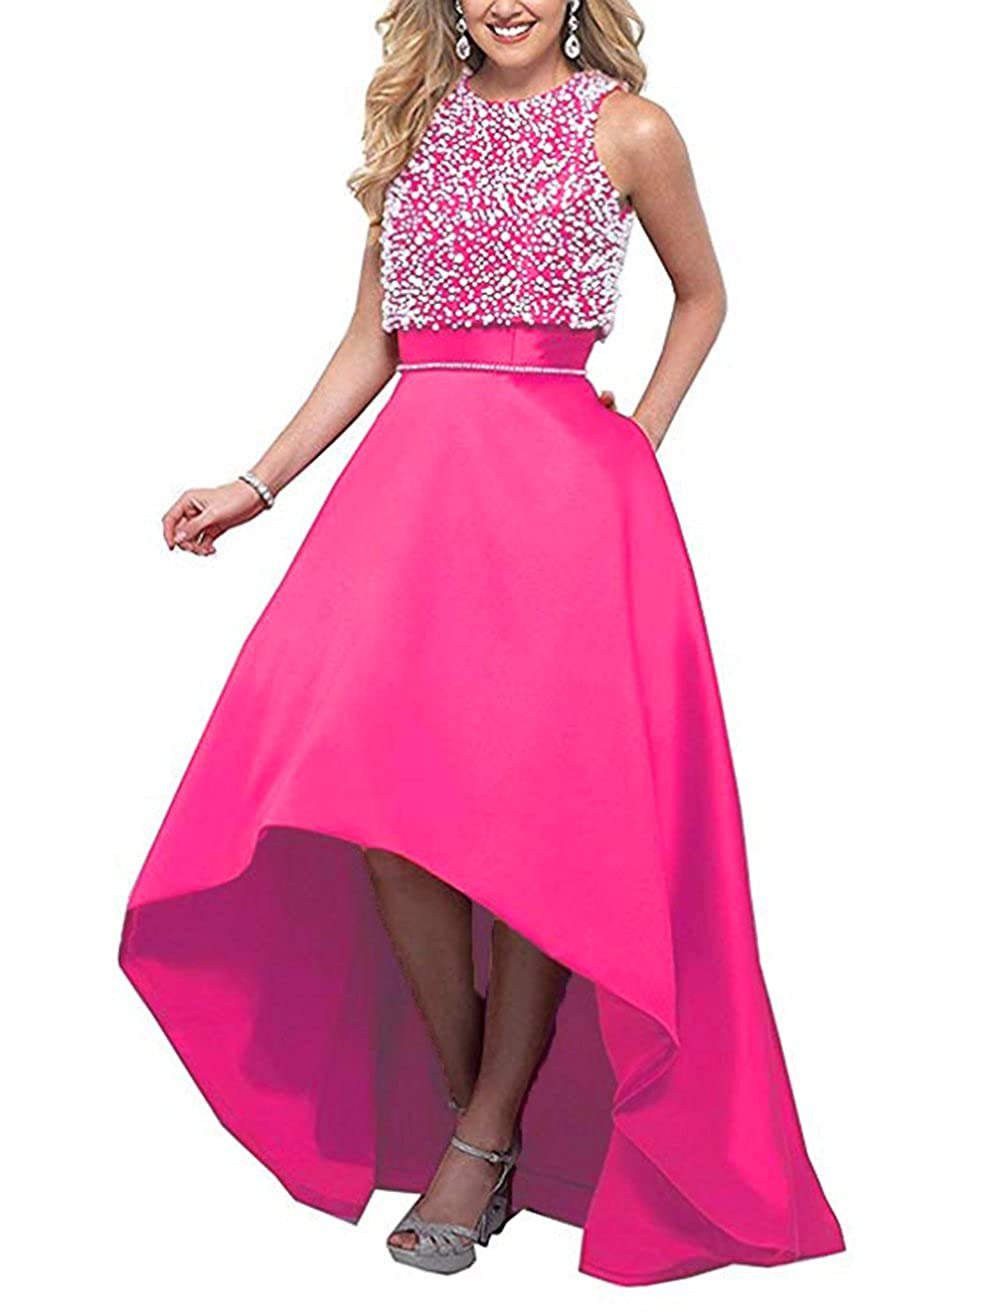 Hot Pink alilith.Z Sexy High Low Beaded Prom Dresses Long Formal Evening Party Gowns for Women 2 Piece with Jacket 2018